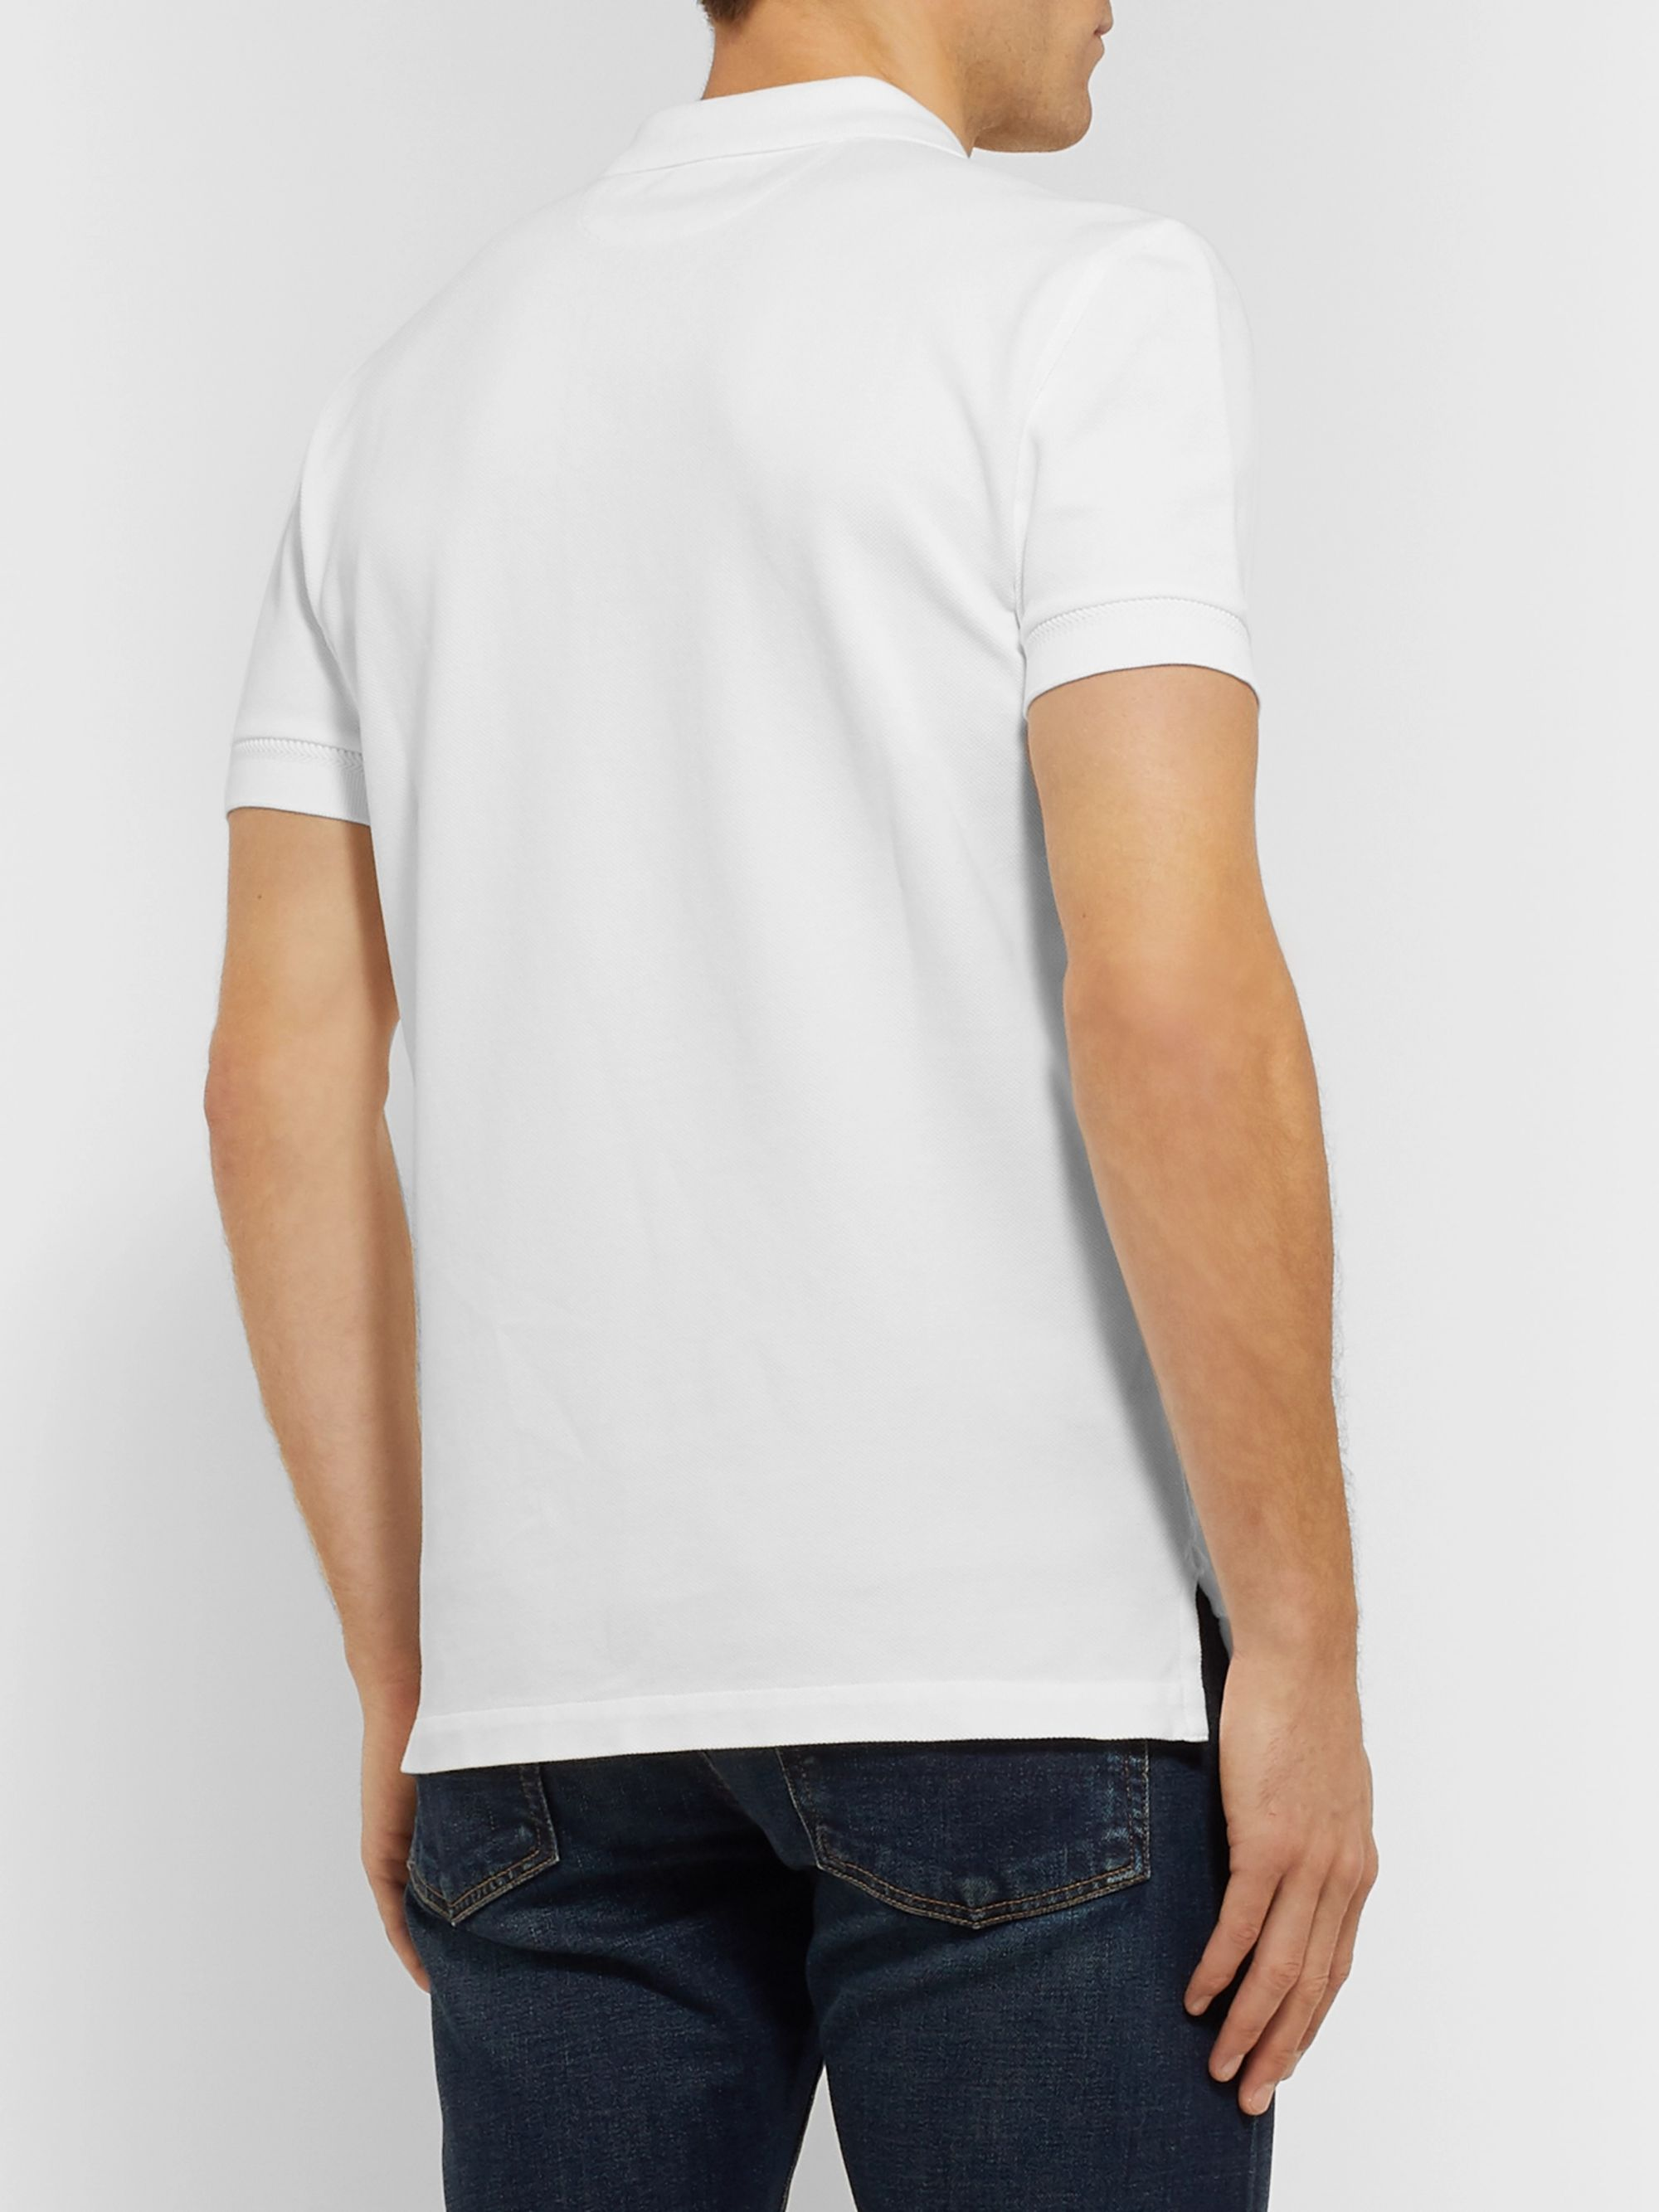 TOM FORD Slim-Fit Garment-Dyed Cotton-Piqué Polo Shirt